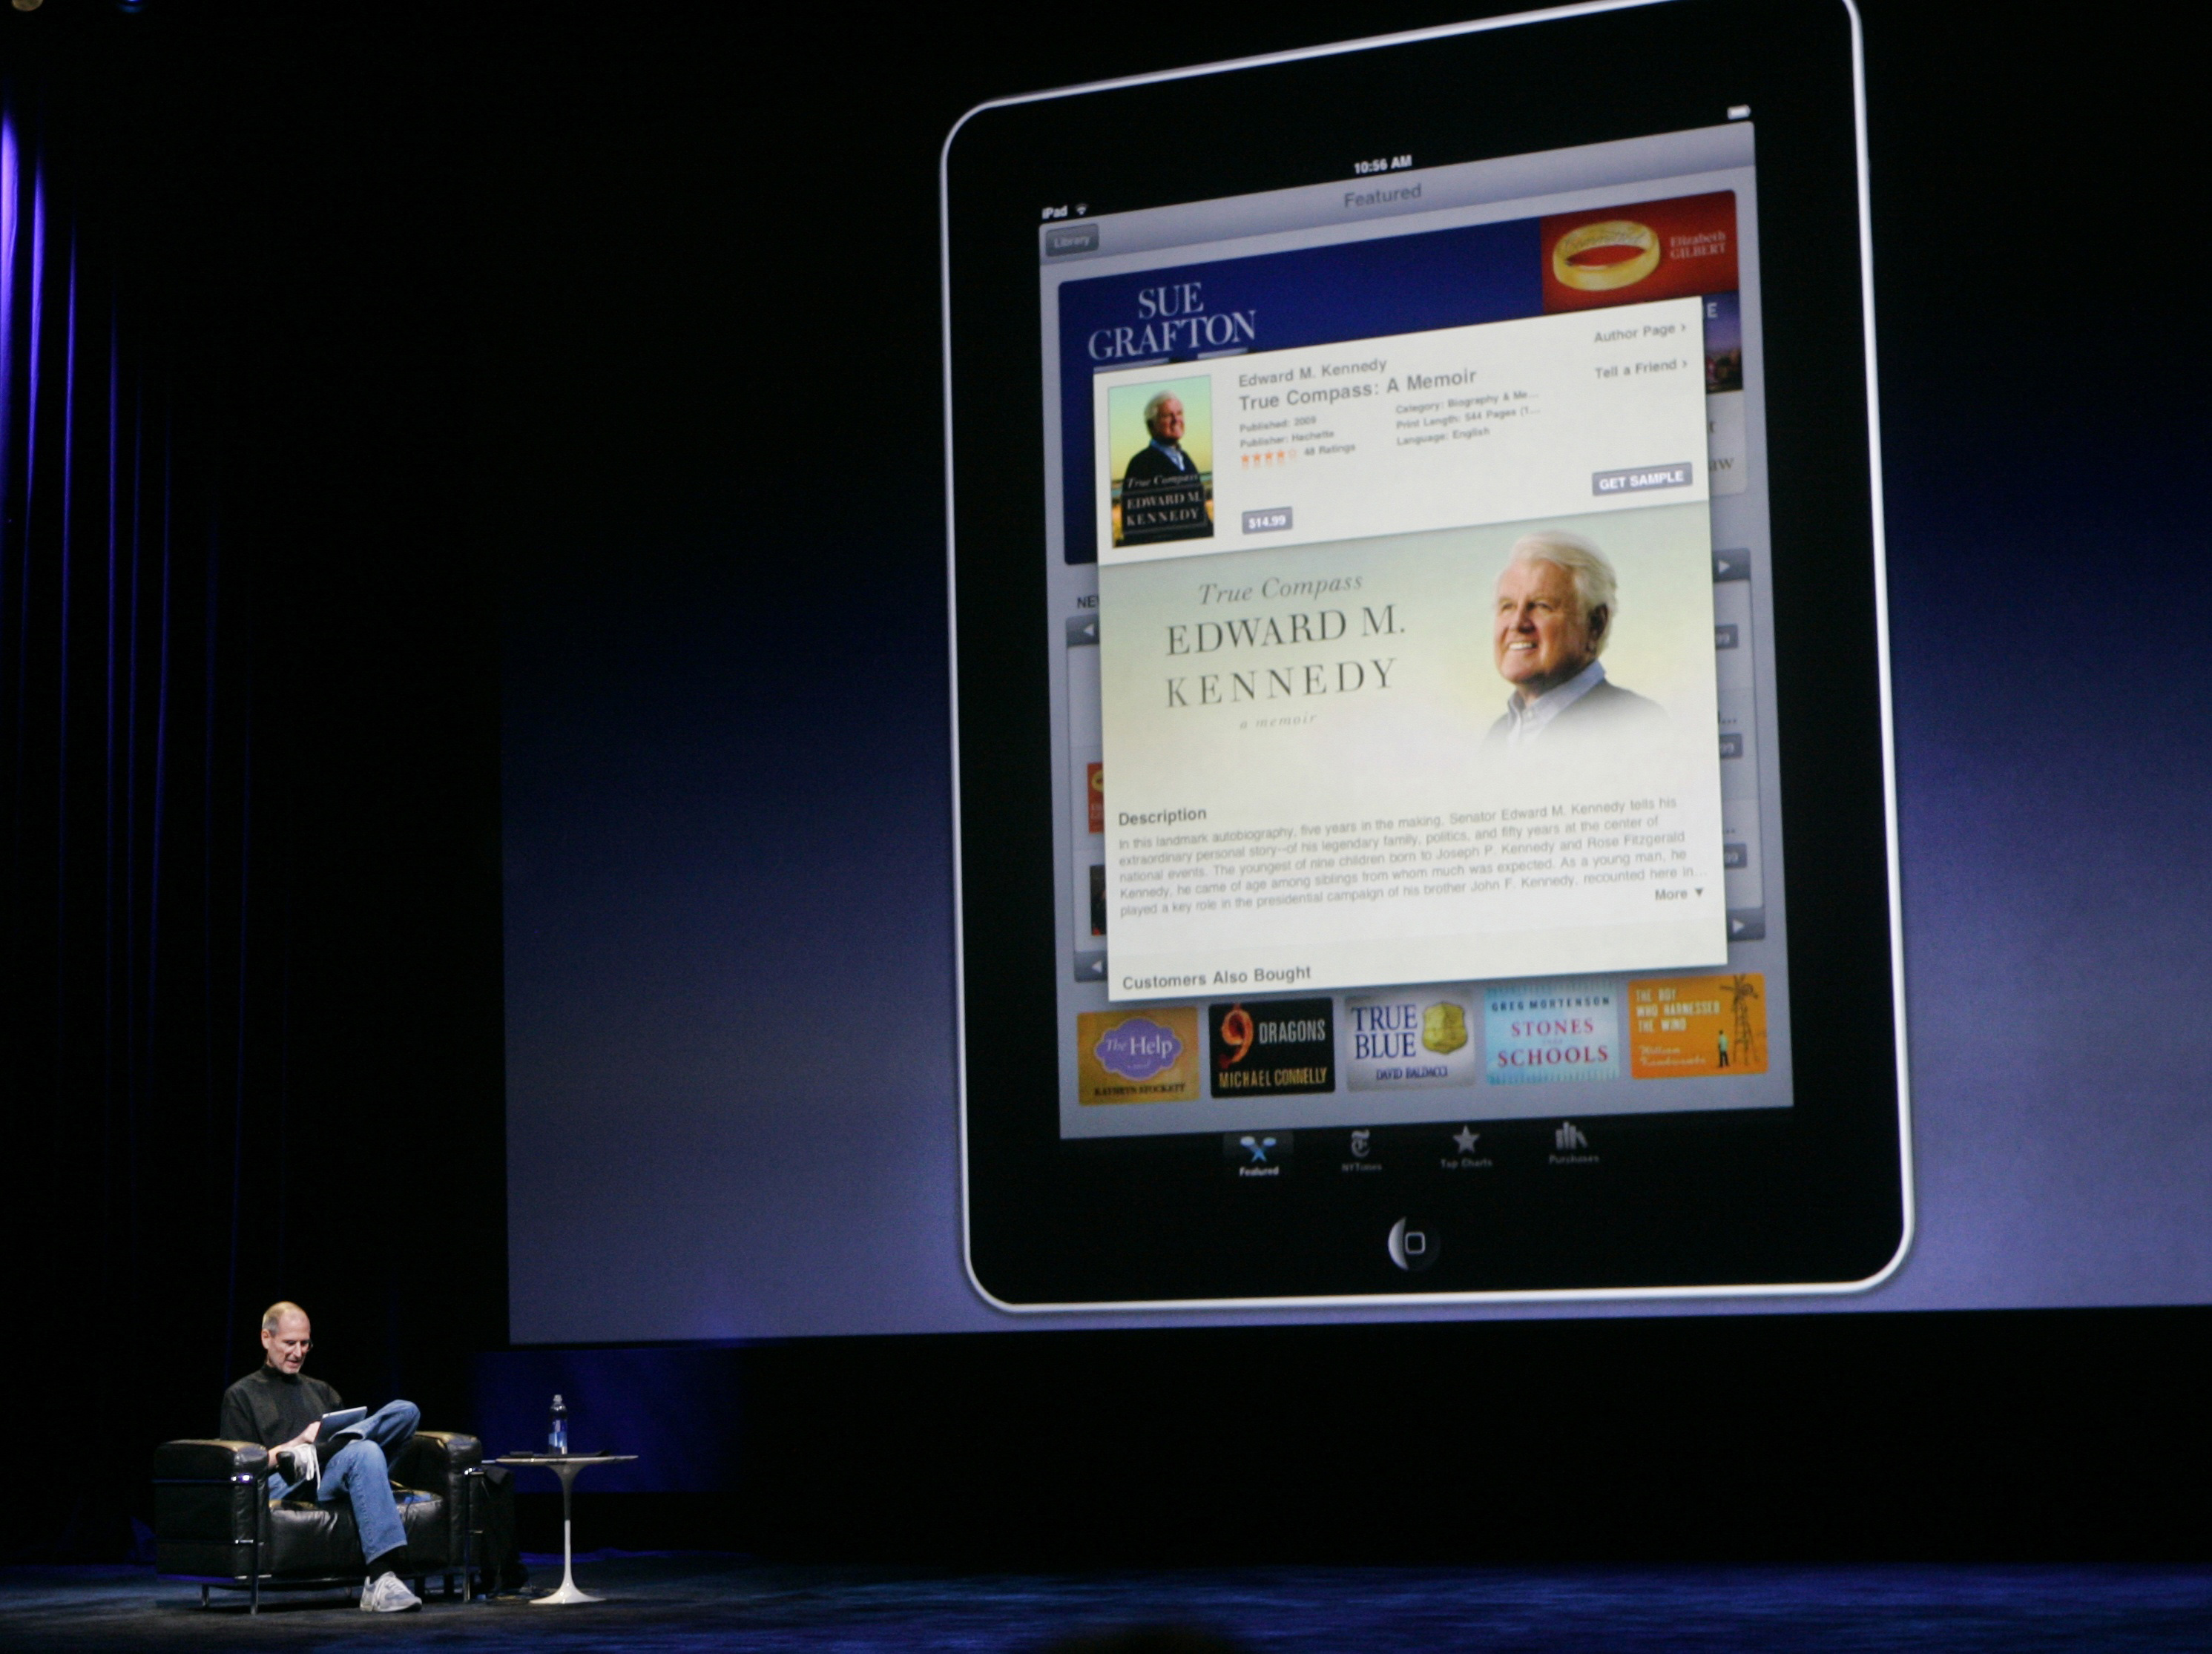 Apple CEO Jobs introduces the iBooks during the launch of Apple's new tablet iPad computing device in San Francisco